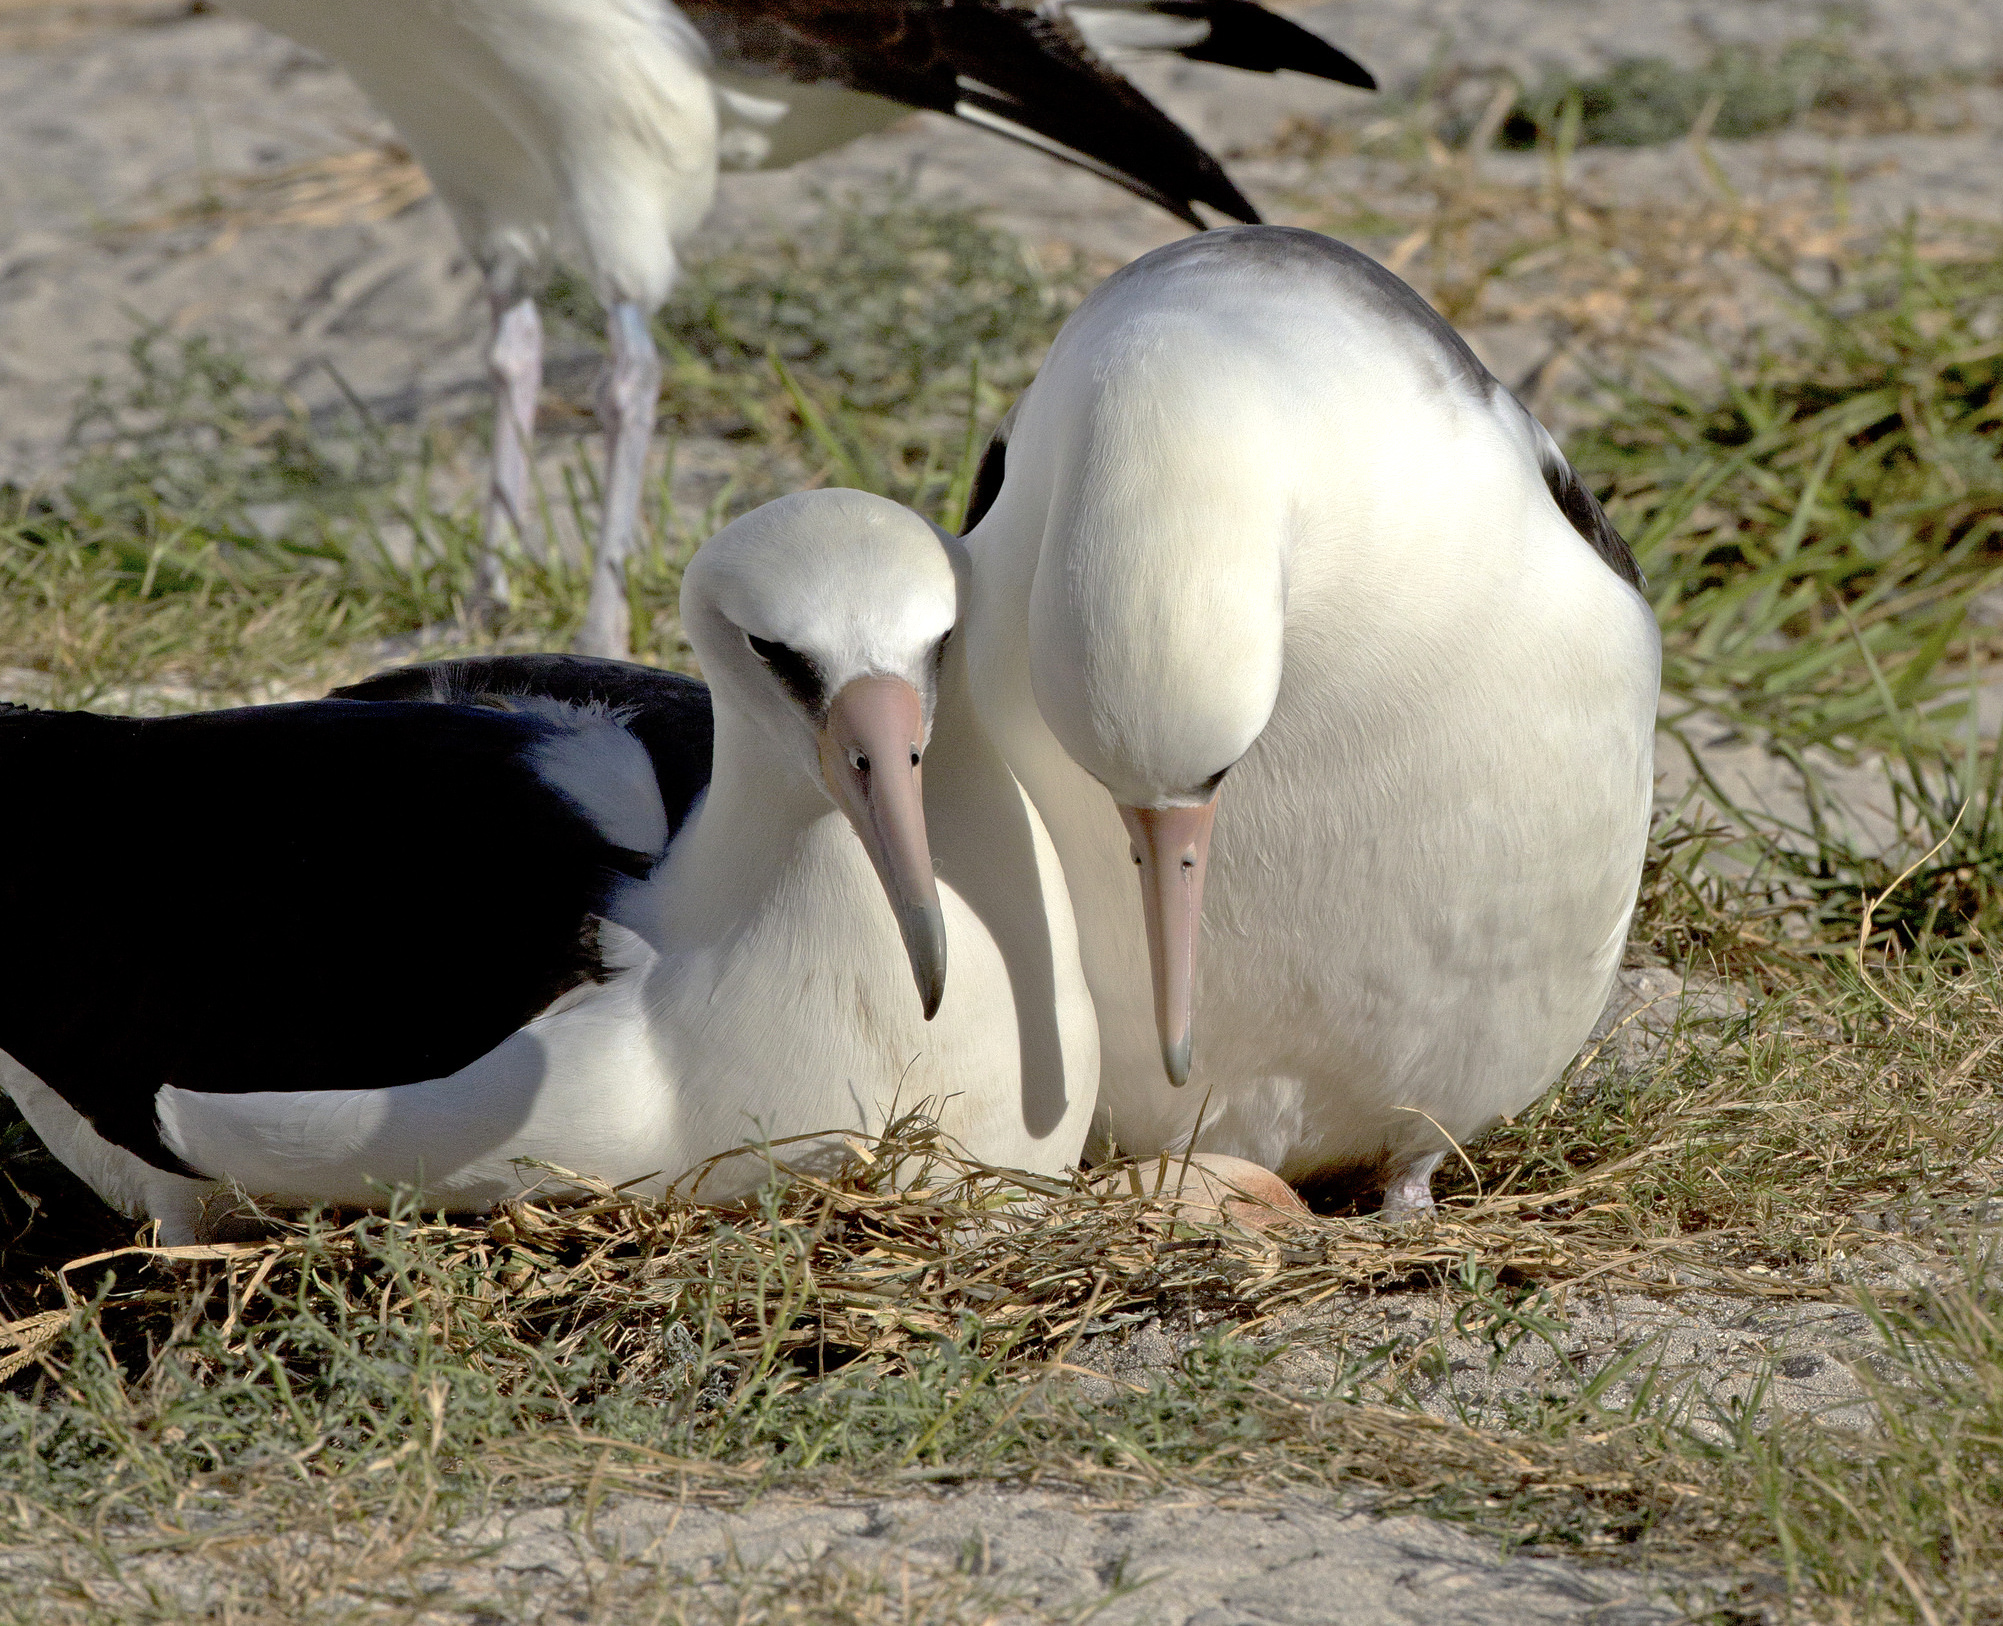 Akeakamai (left) and Wisdom with their egg on November 28, 2015. Image credit: Midway Atoll National Wildlife Refuge.